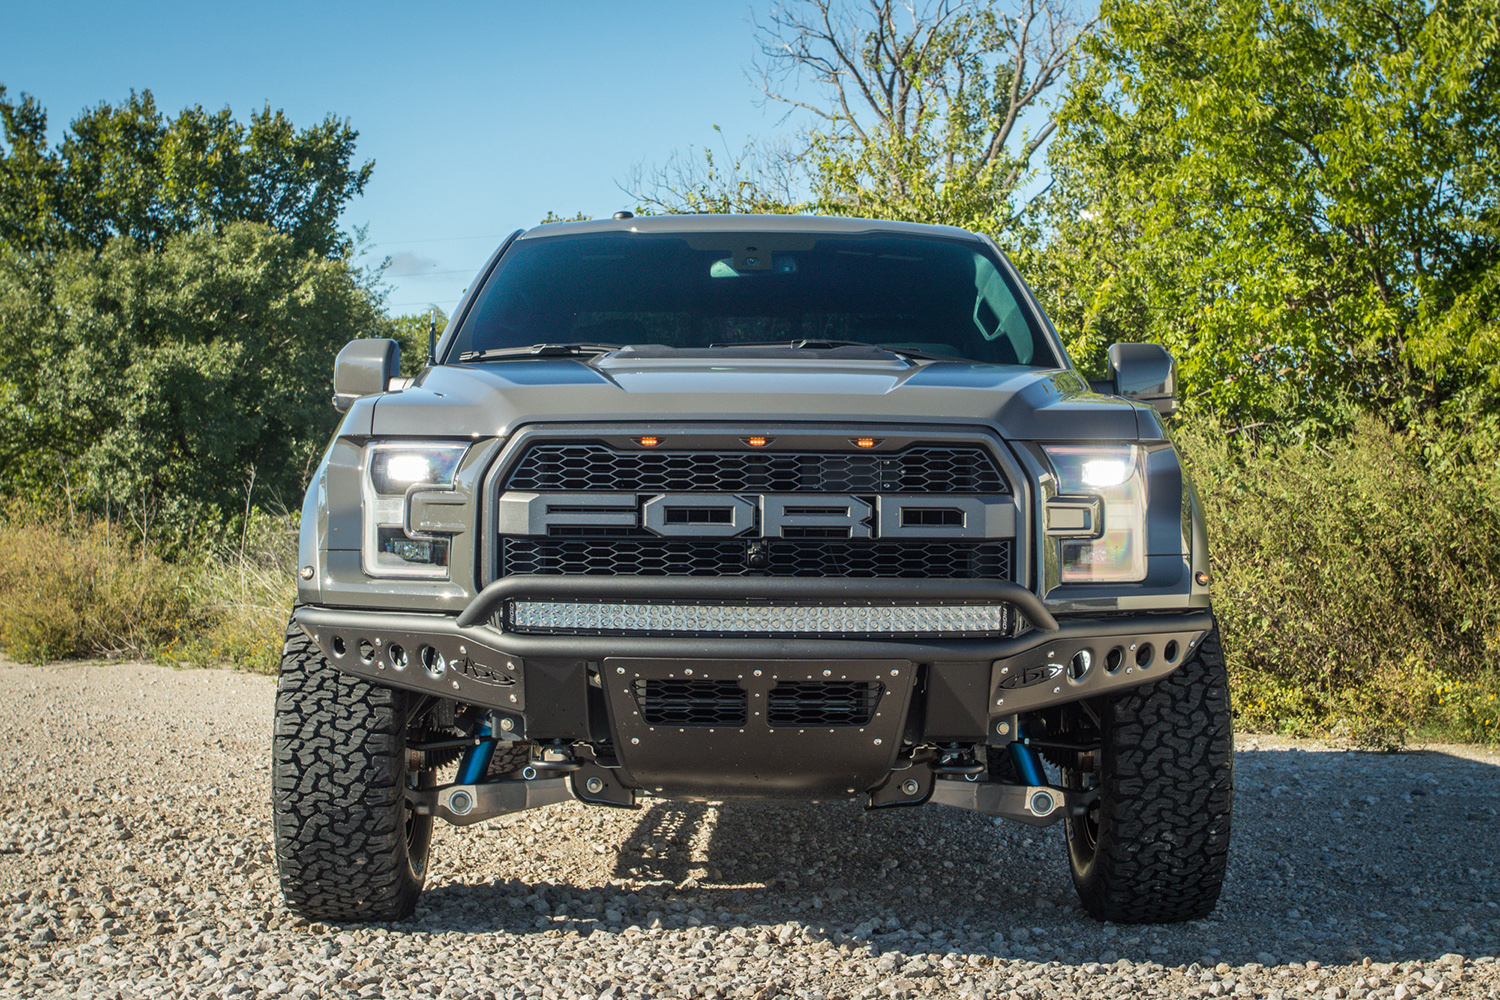 raptor f 150 with add stealth r bumpers custom 4x4 off road truck built by rad rides raptor f 150 with add stealth r bumpers